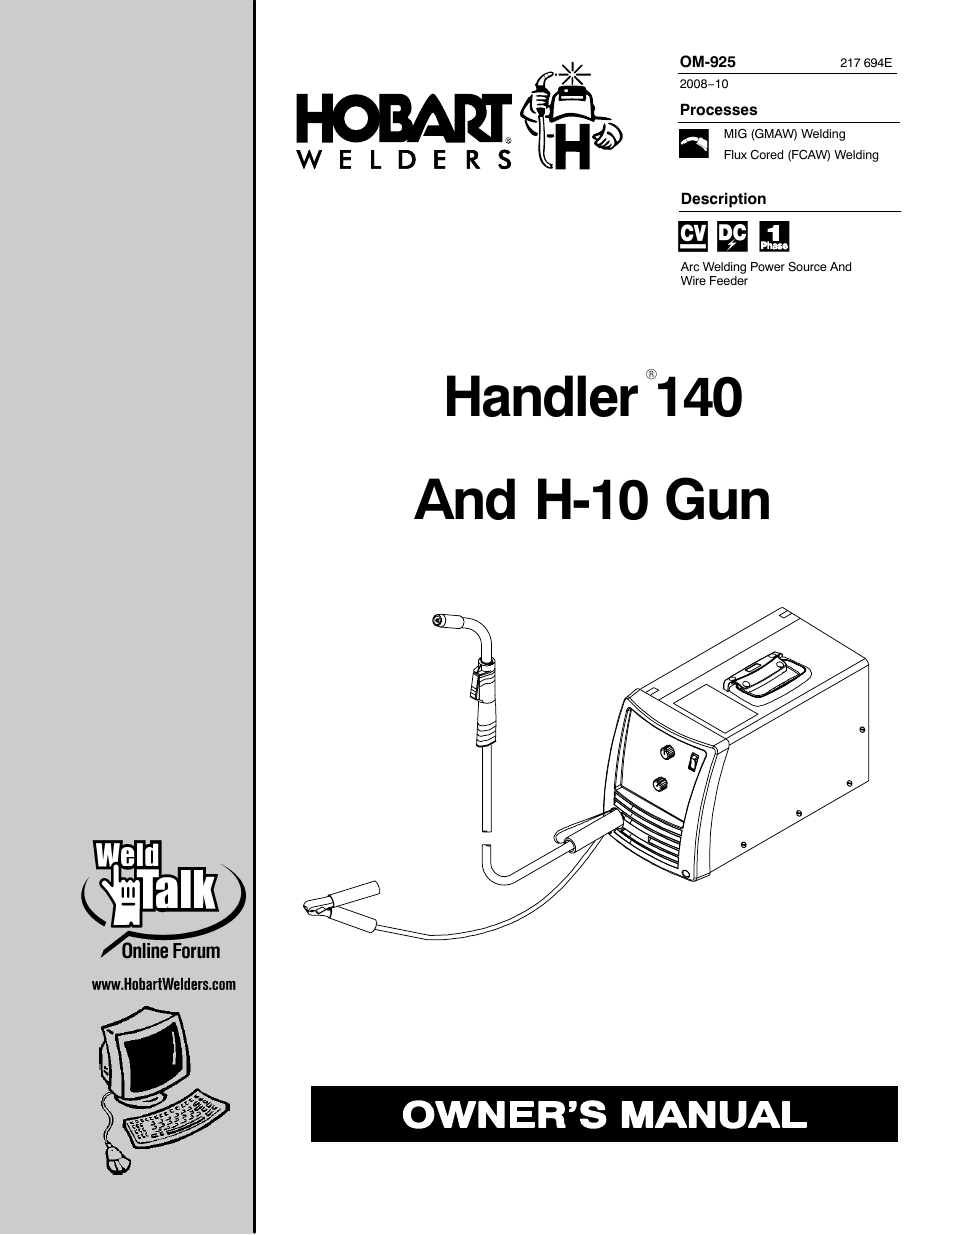 hobart welding products handler 140 om